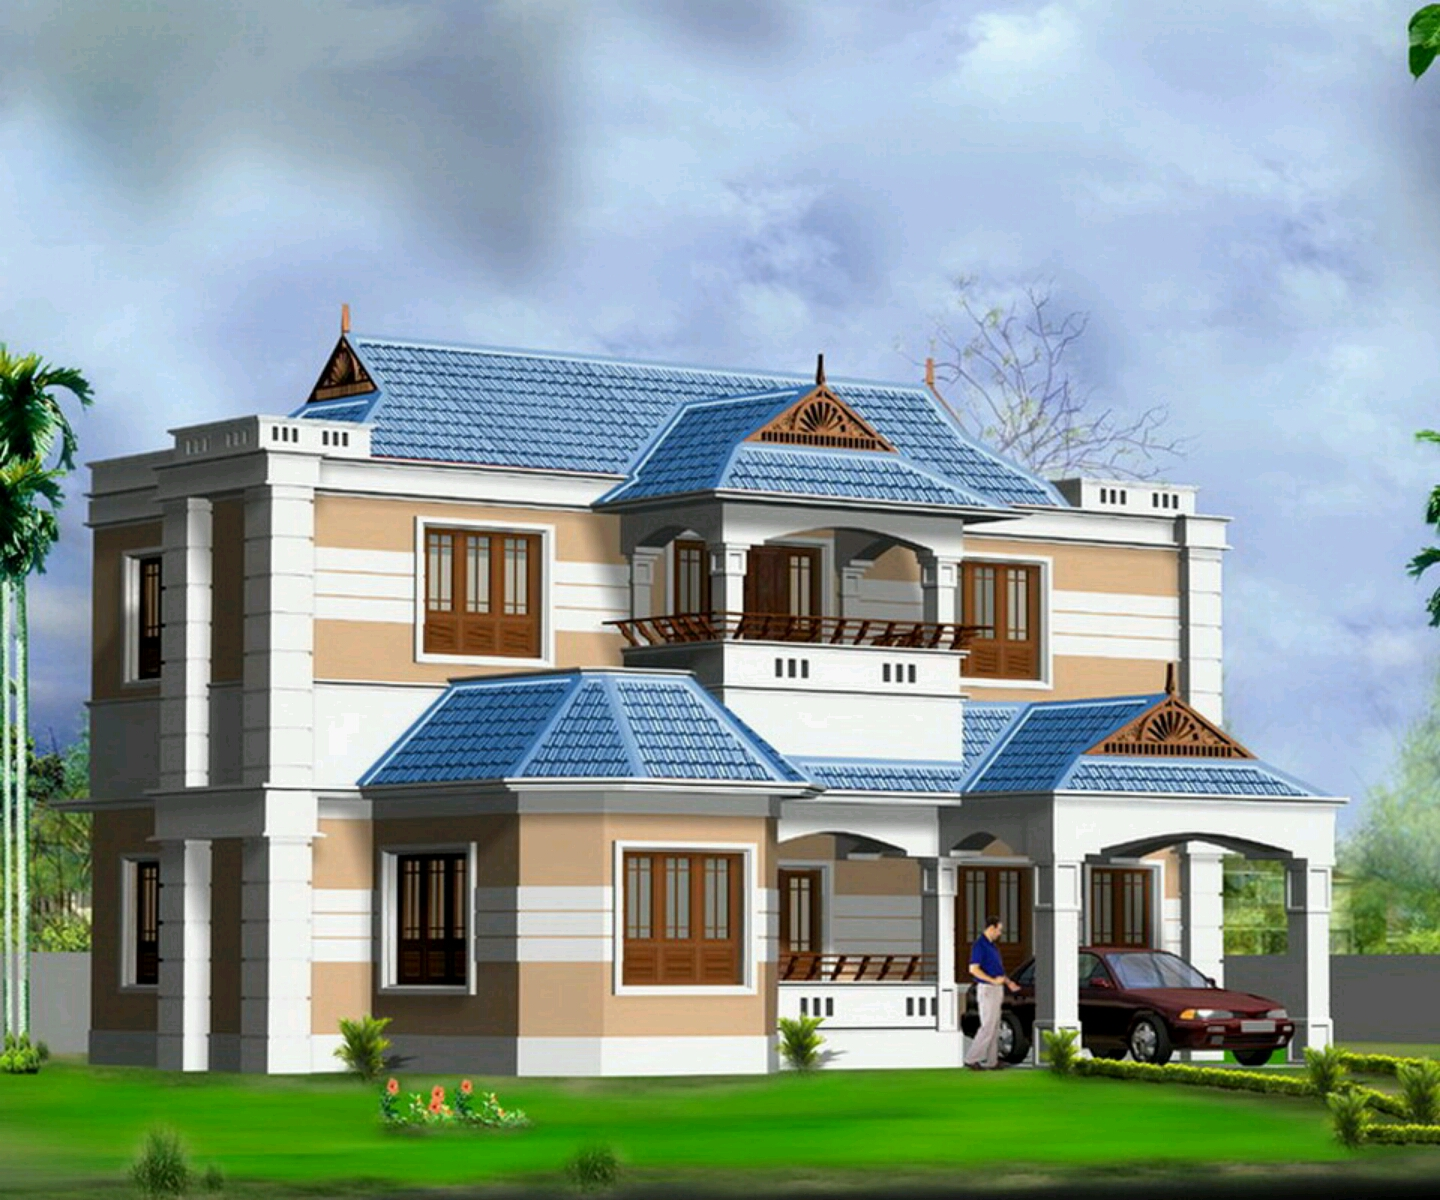 Home Design Pictures Of Homes Designs Star Dreams Homes